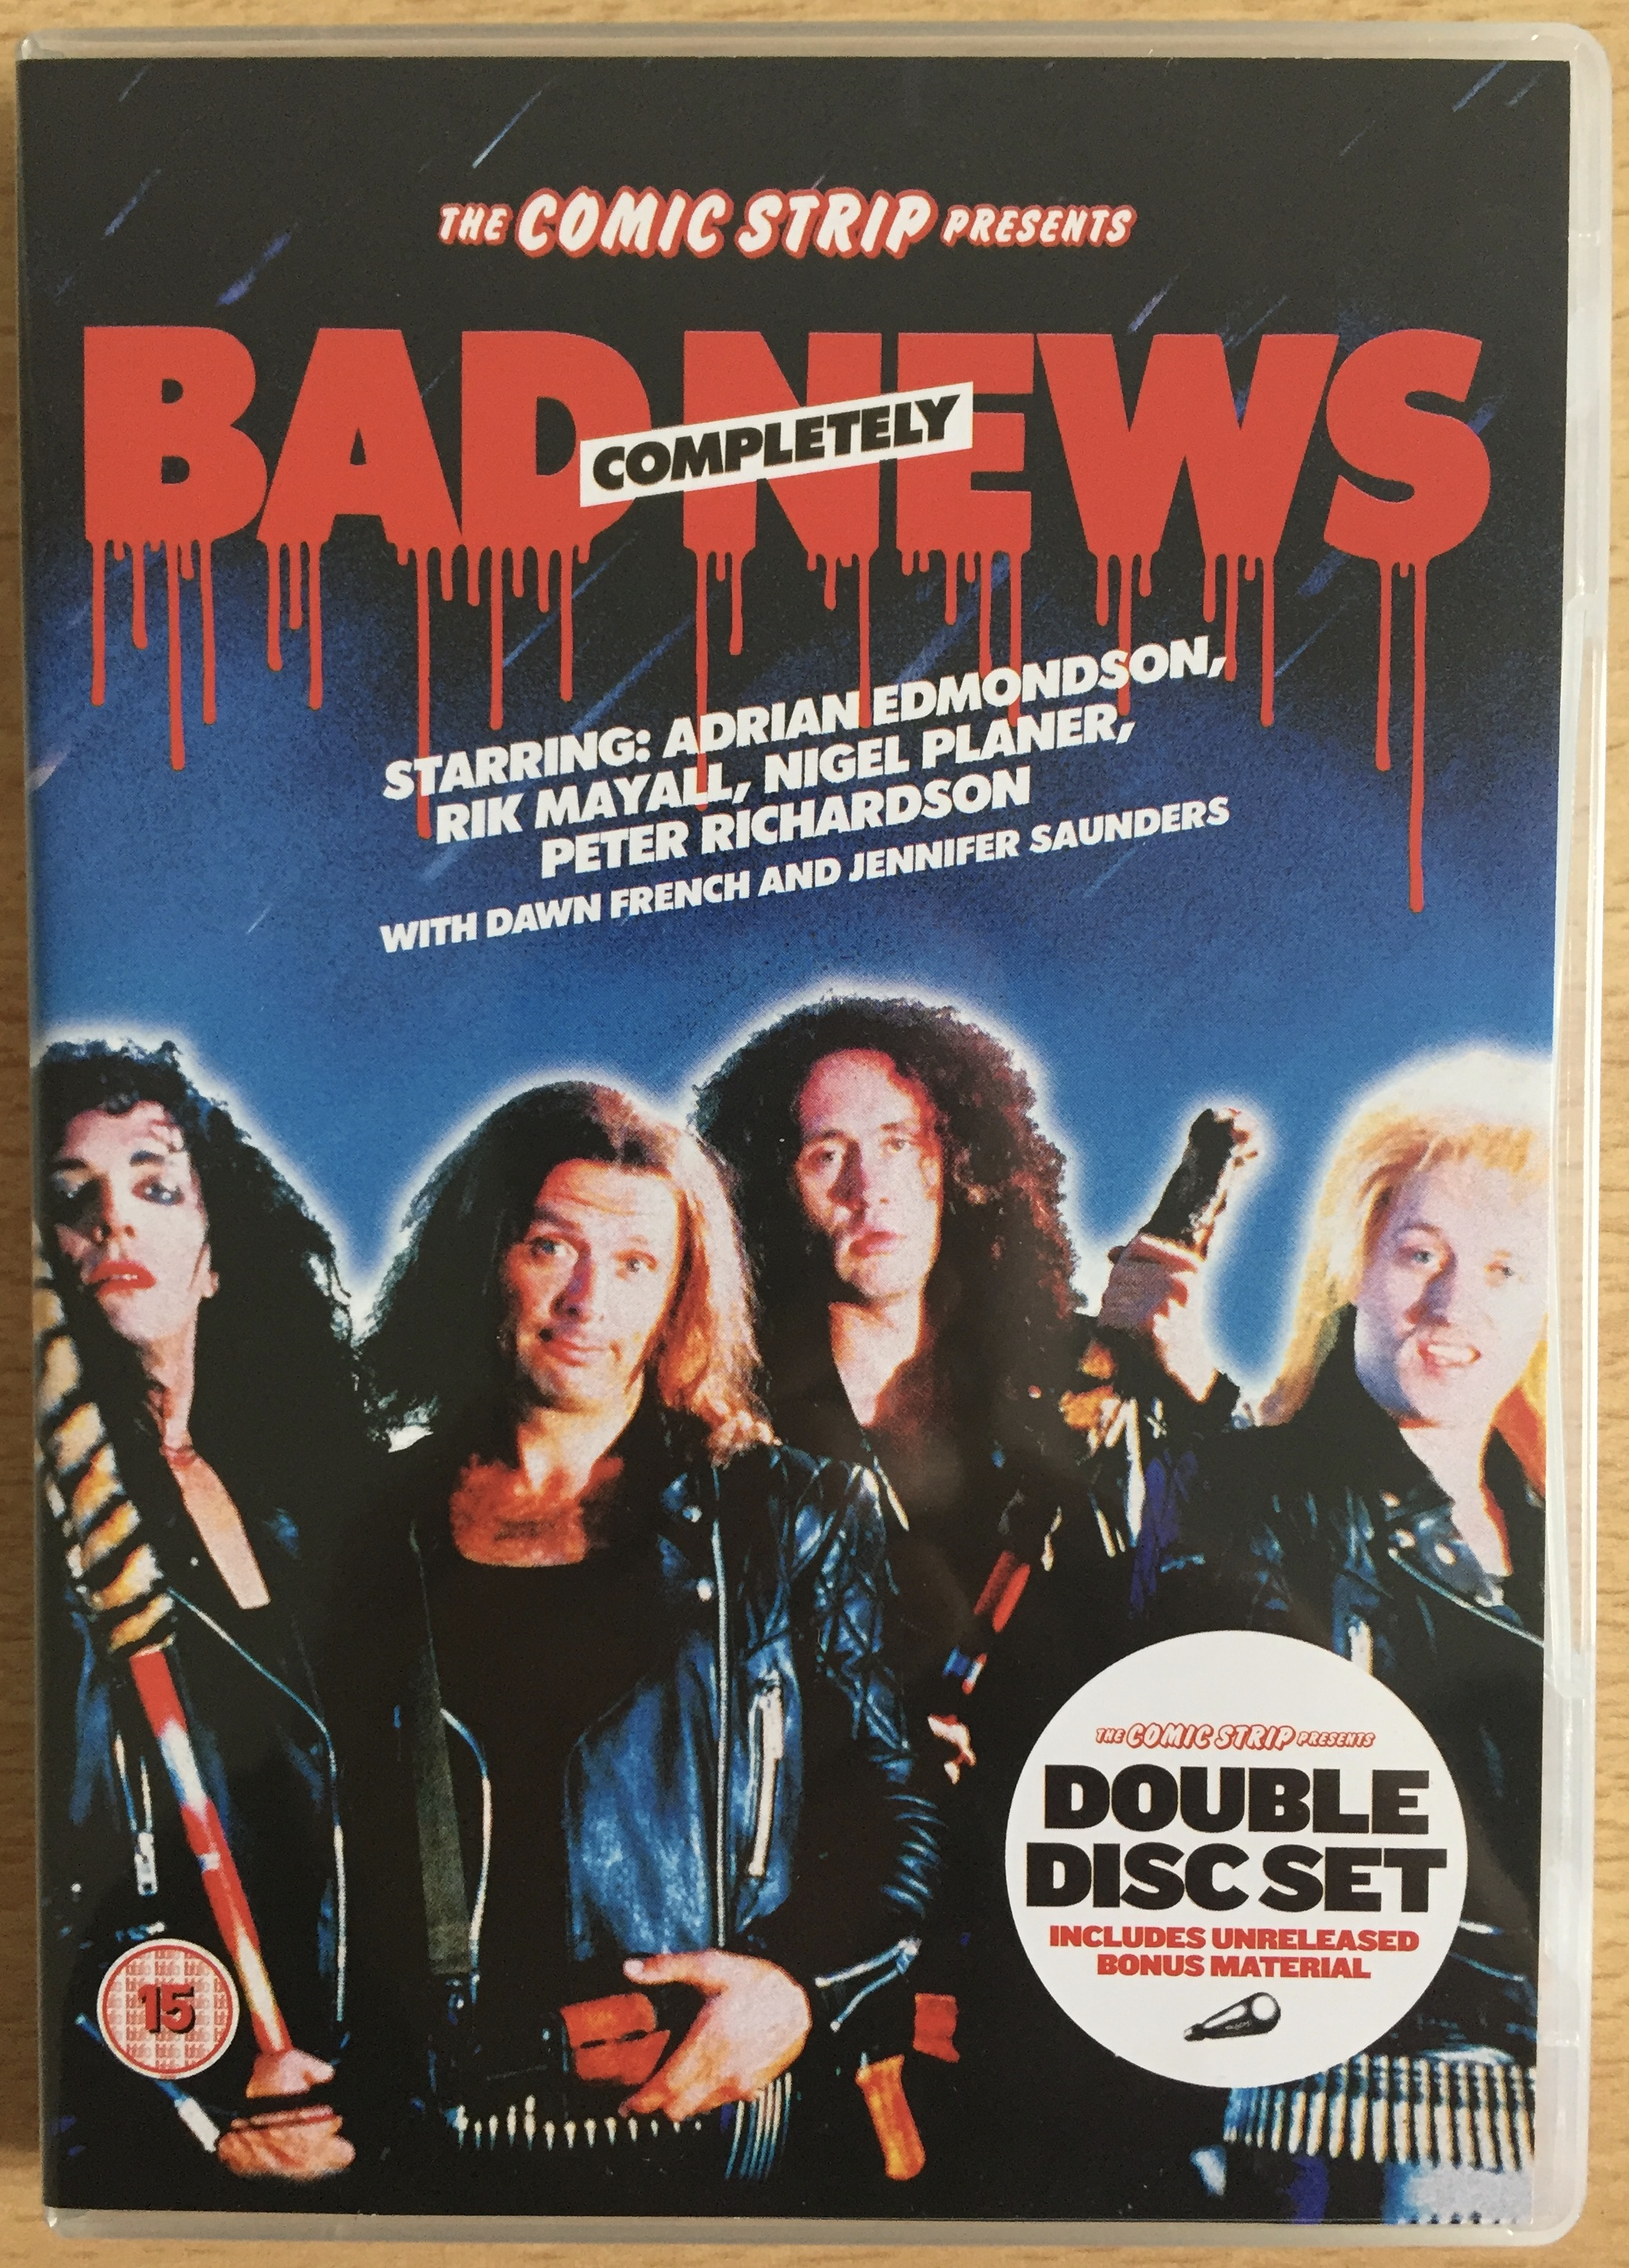 DVD cover for The Comic Strip Presents Completely Bad News, showing the 4 members of the spoof metal band.